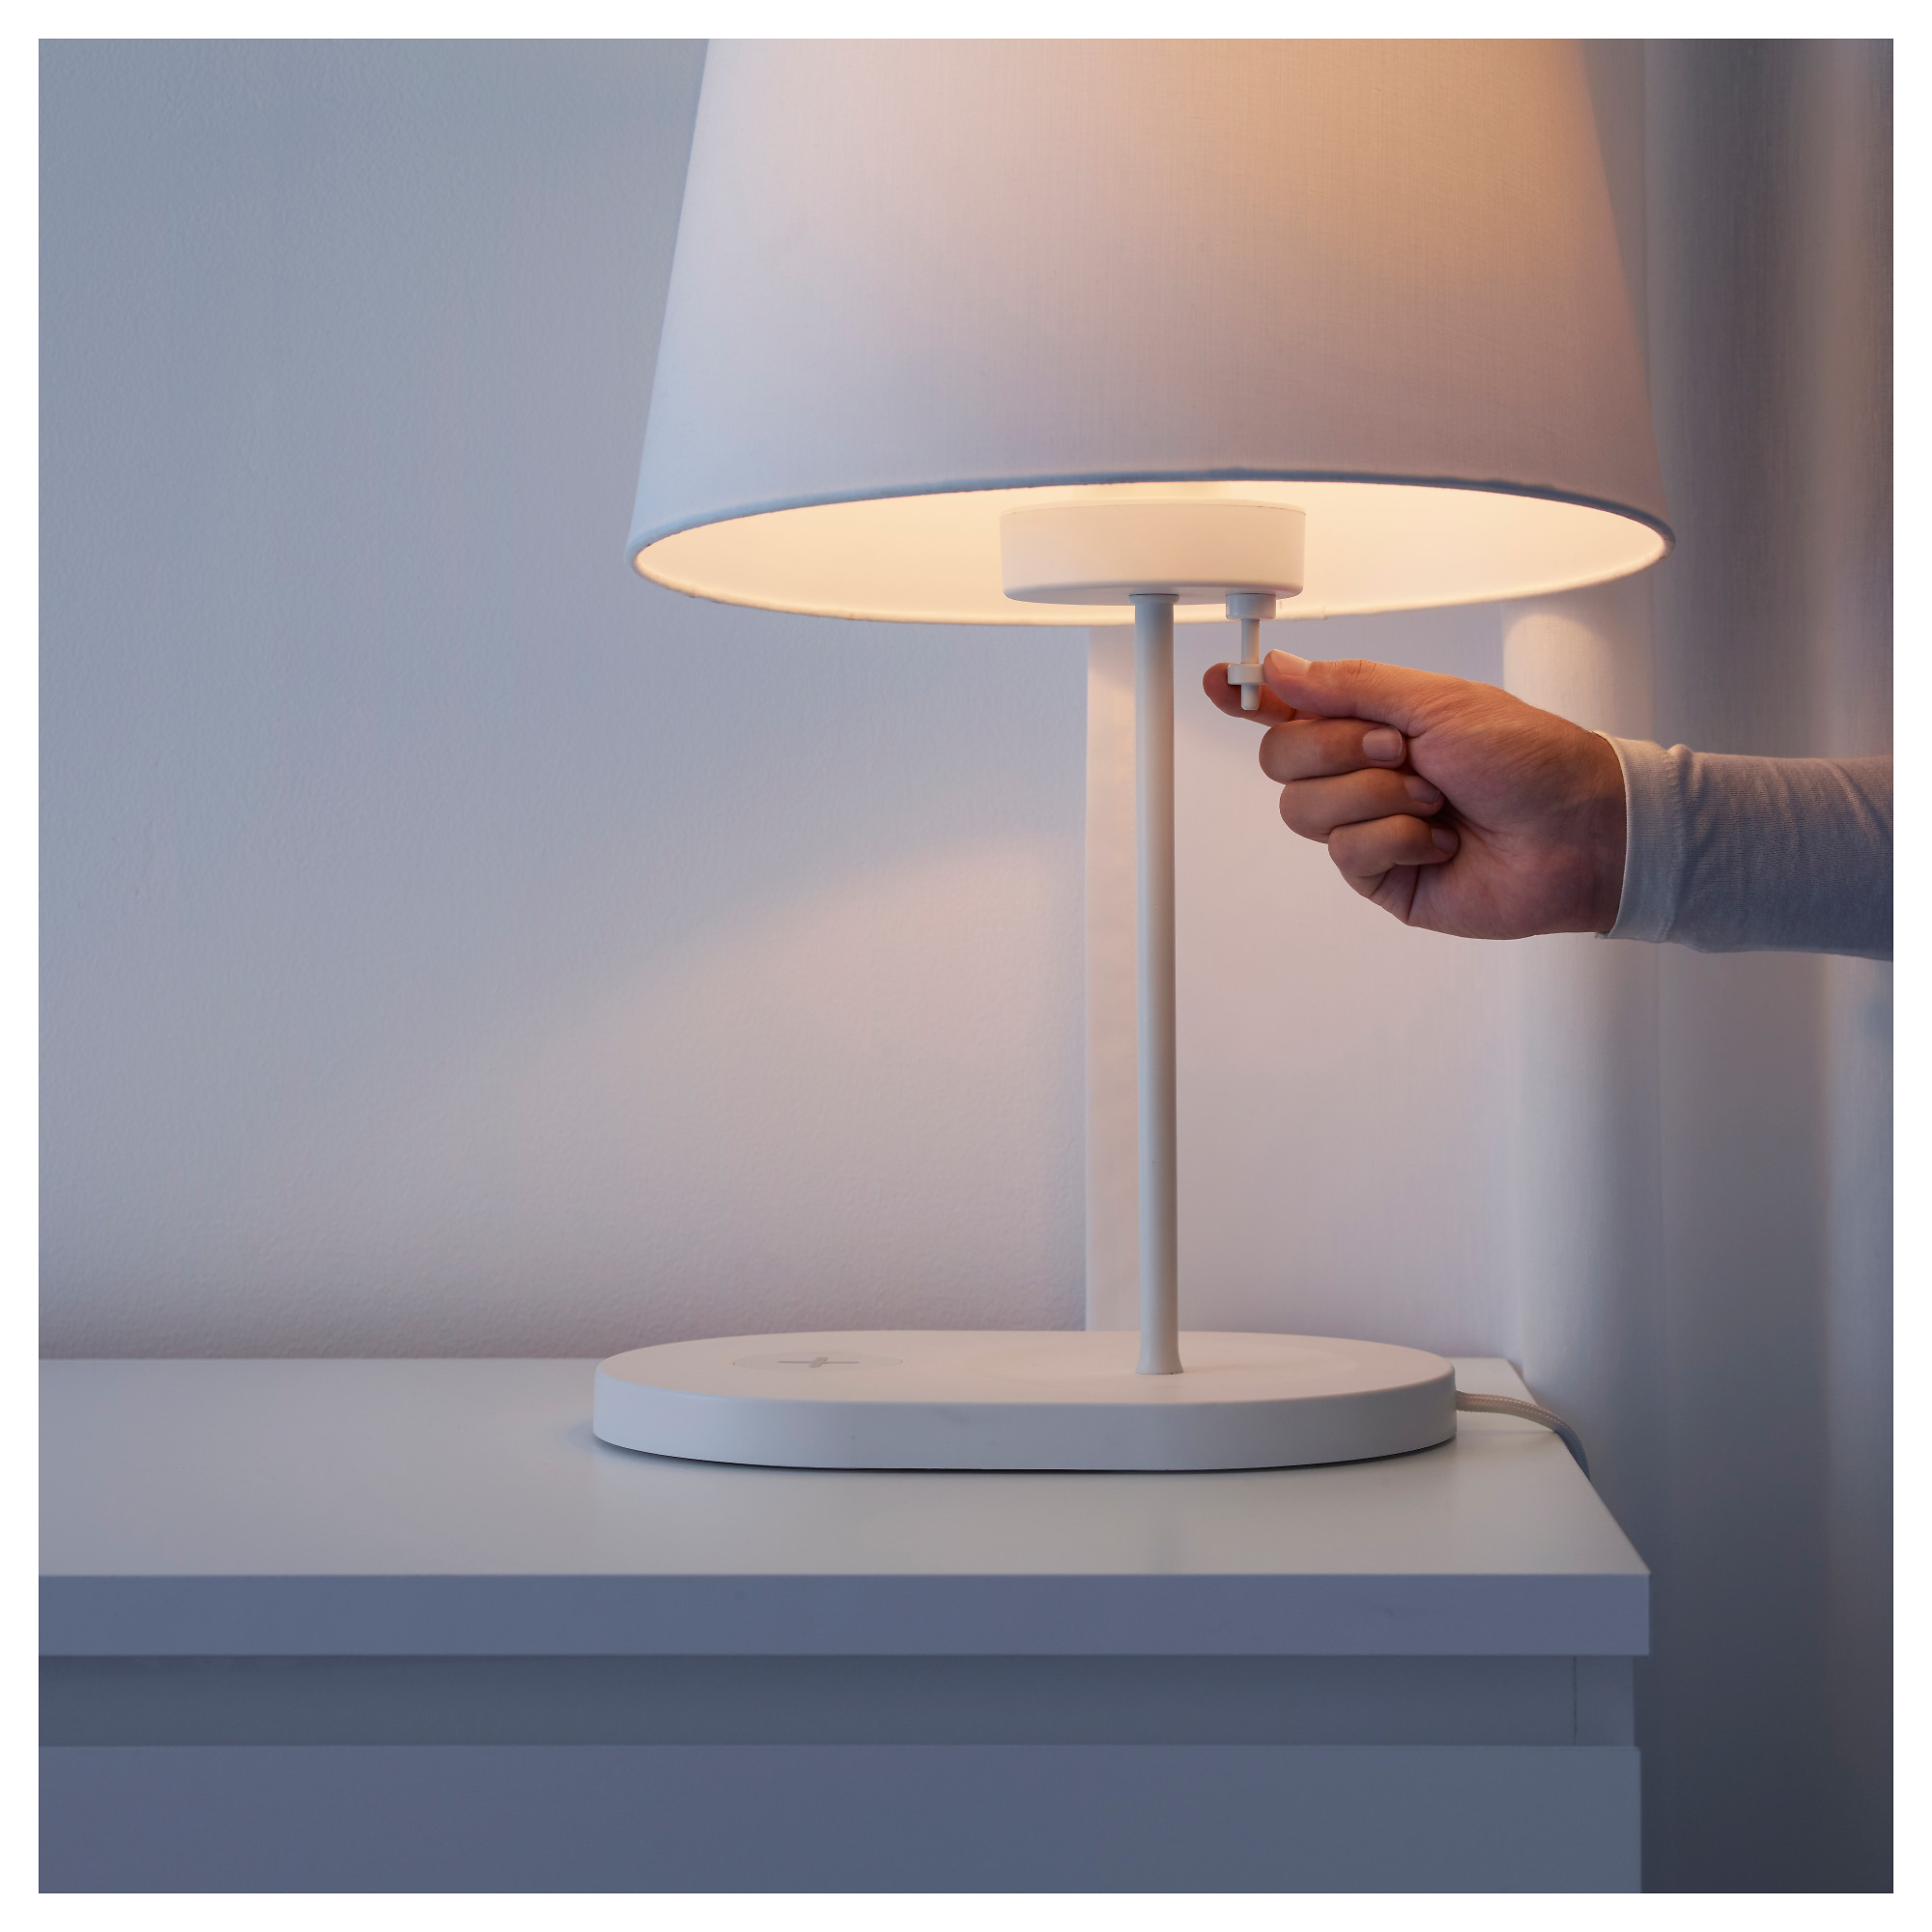 VARV Table Lamp Base W/charging+LED Bulb   IKEA